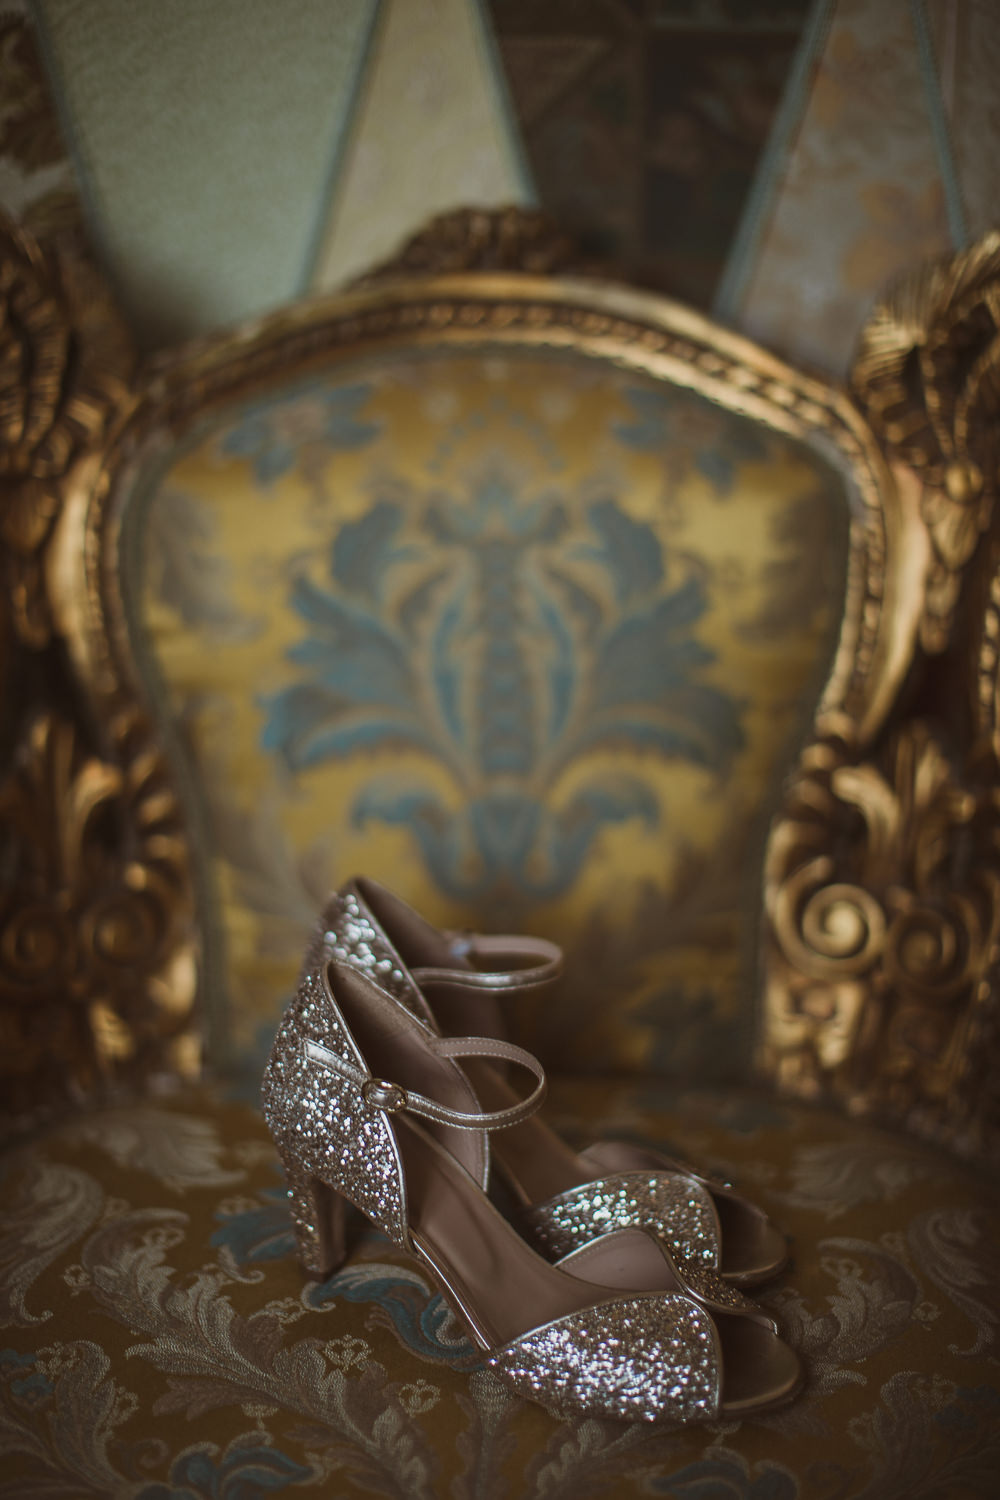 Glitter Peep Toe Shoes Bride Bridal Escape To The Chateau Wedding The Springles